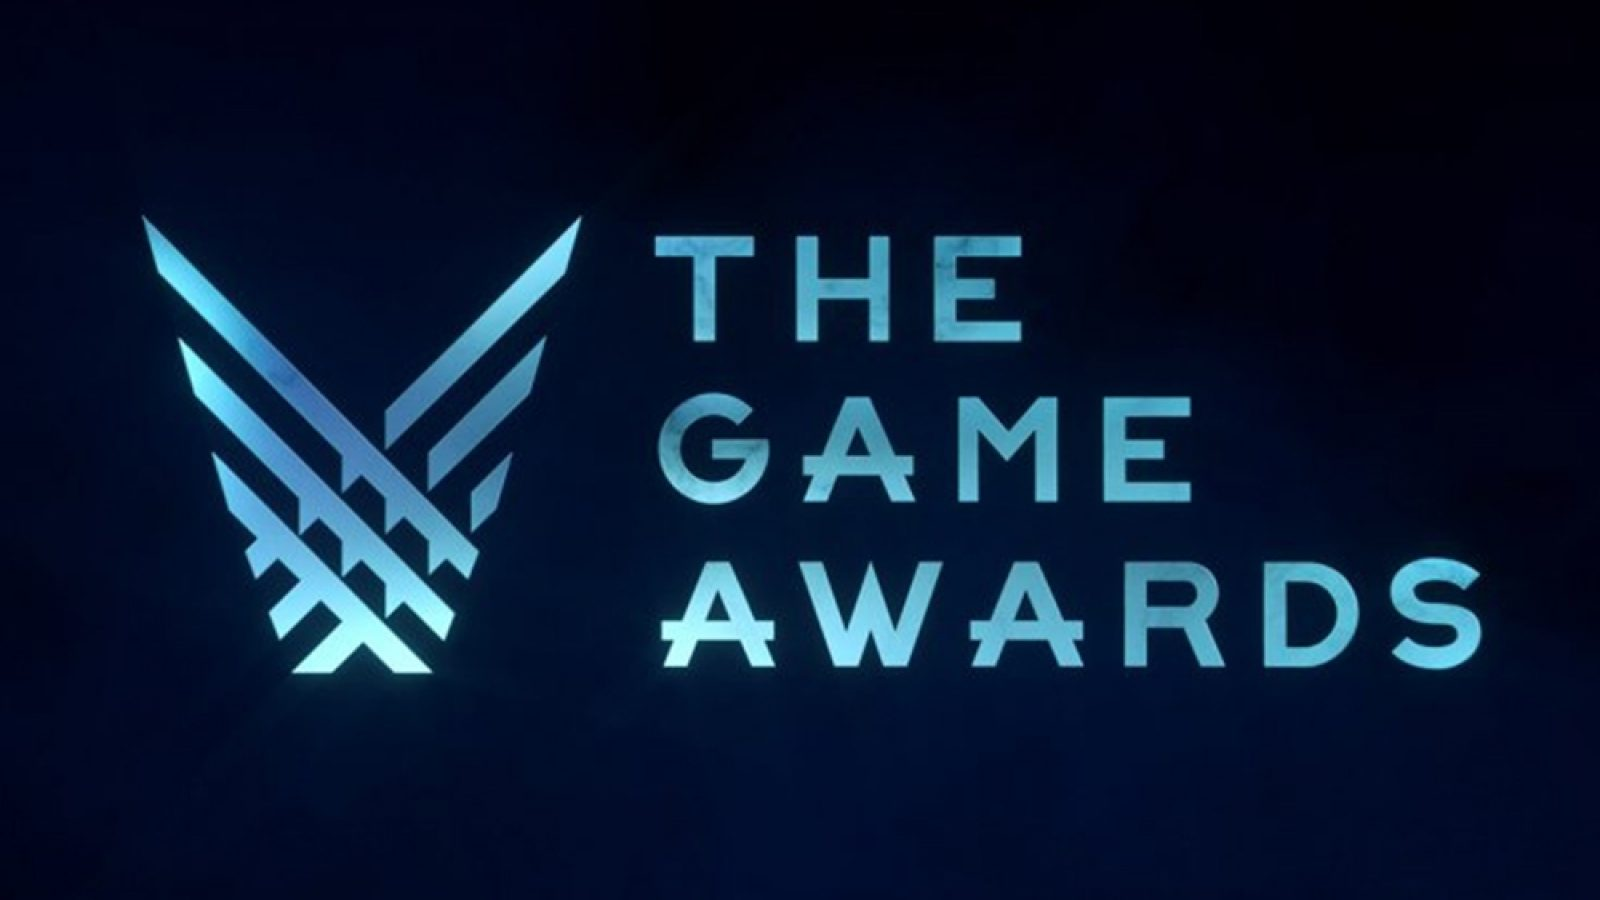 résultats des game awards 2018